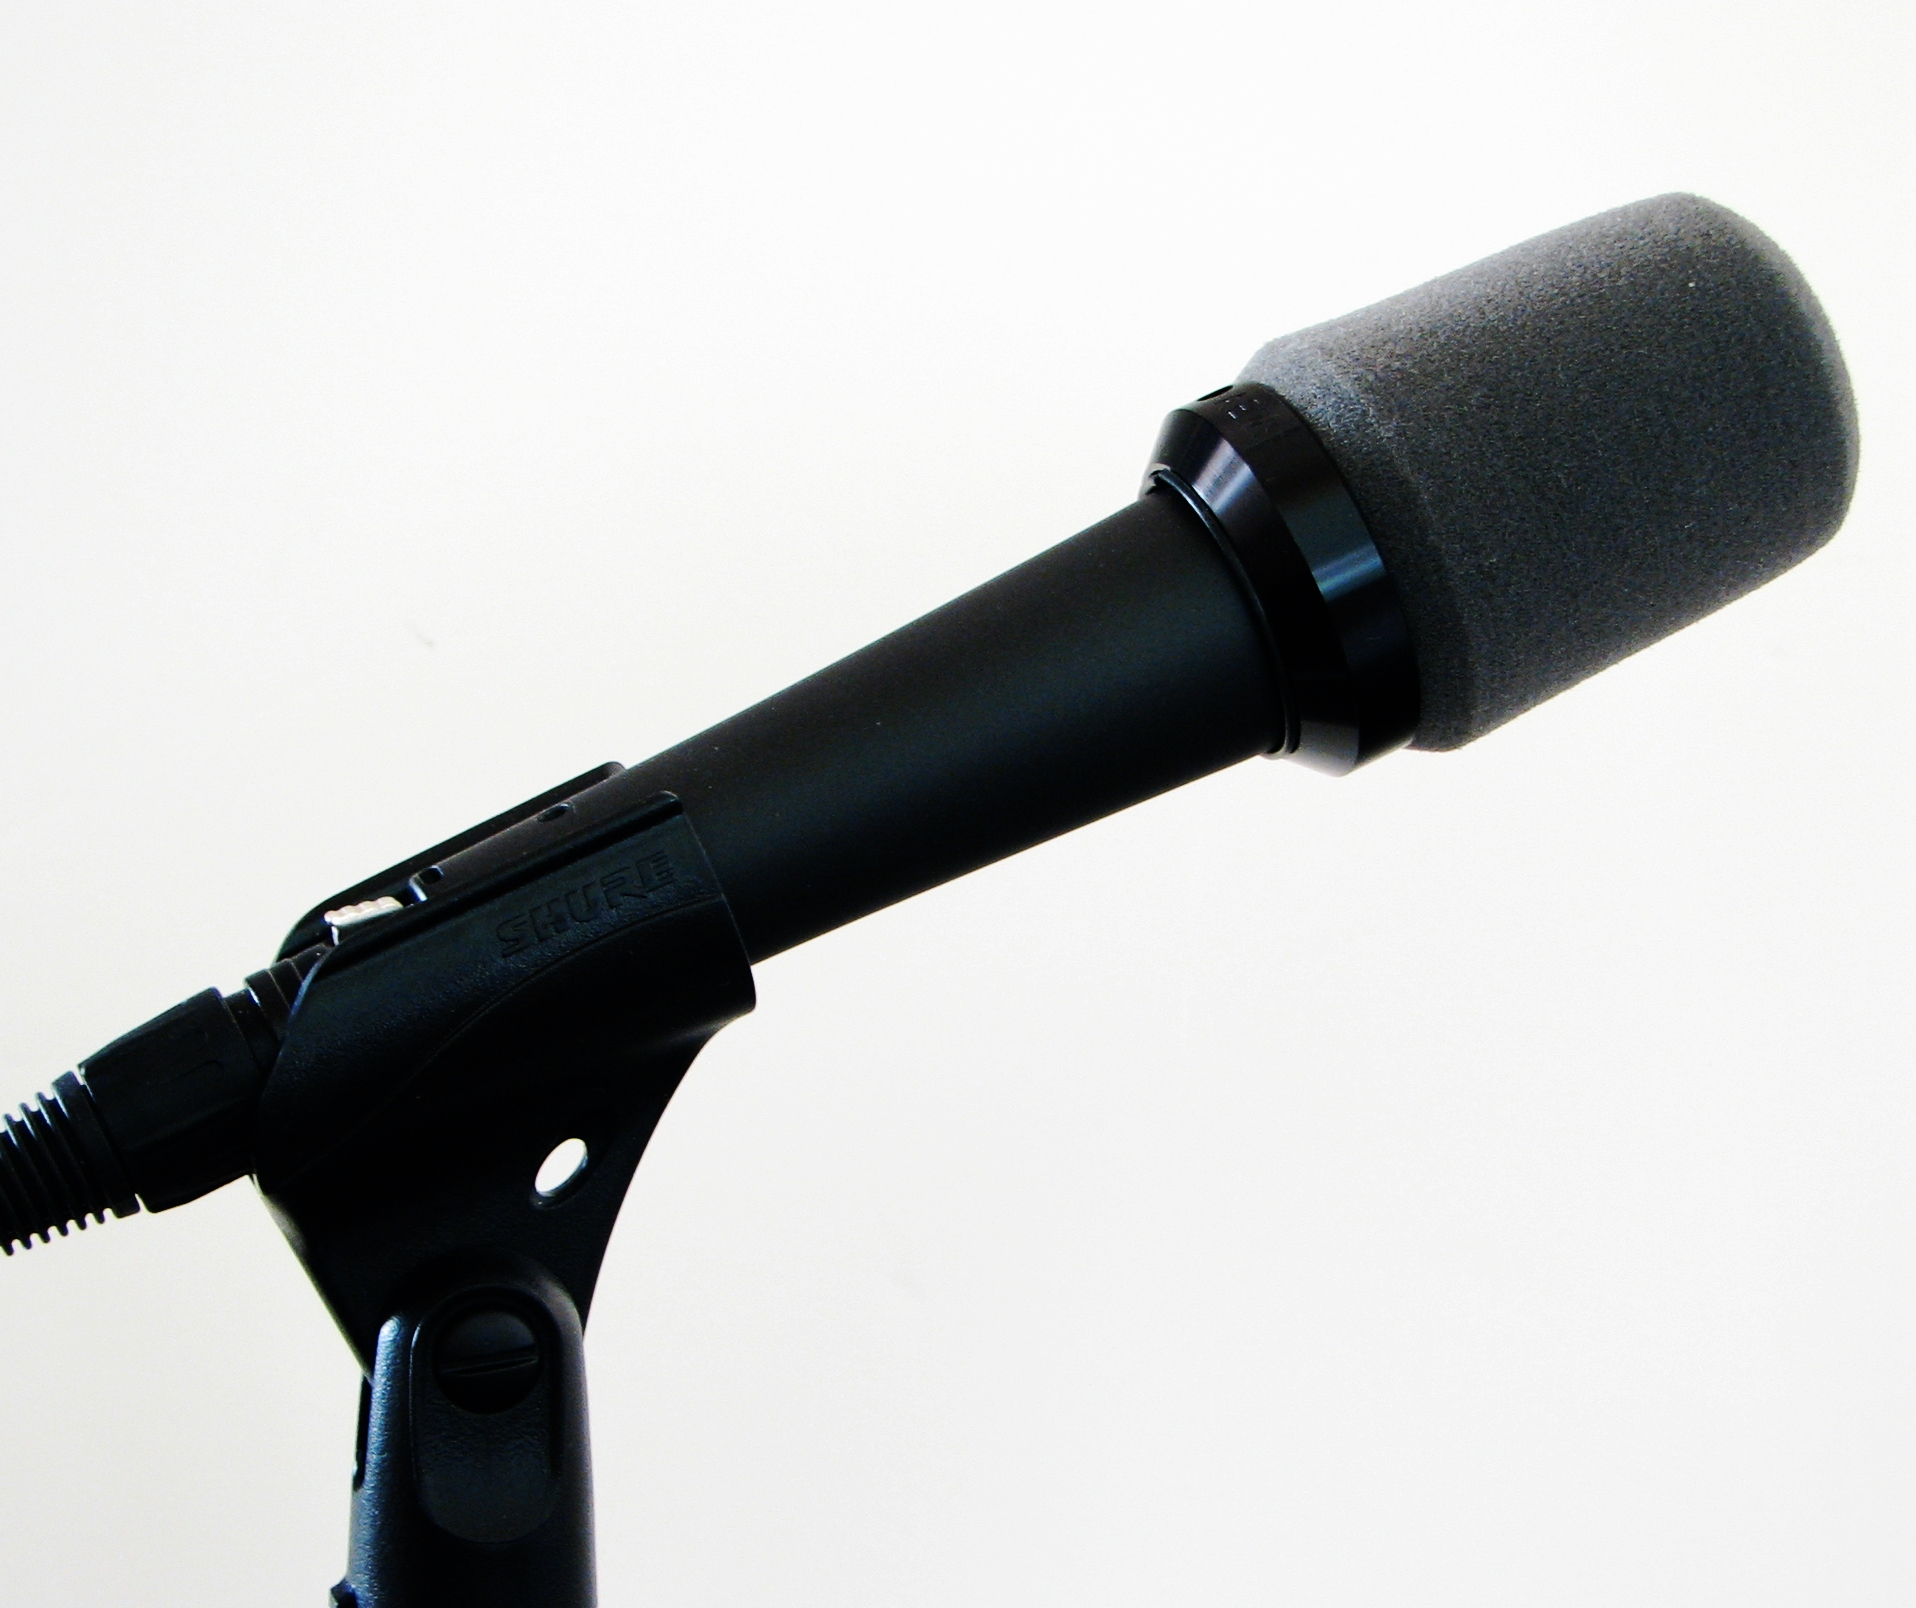 At least the mics worked well at the new venue